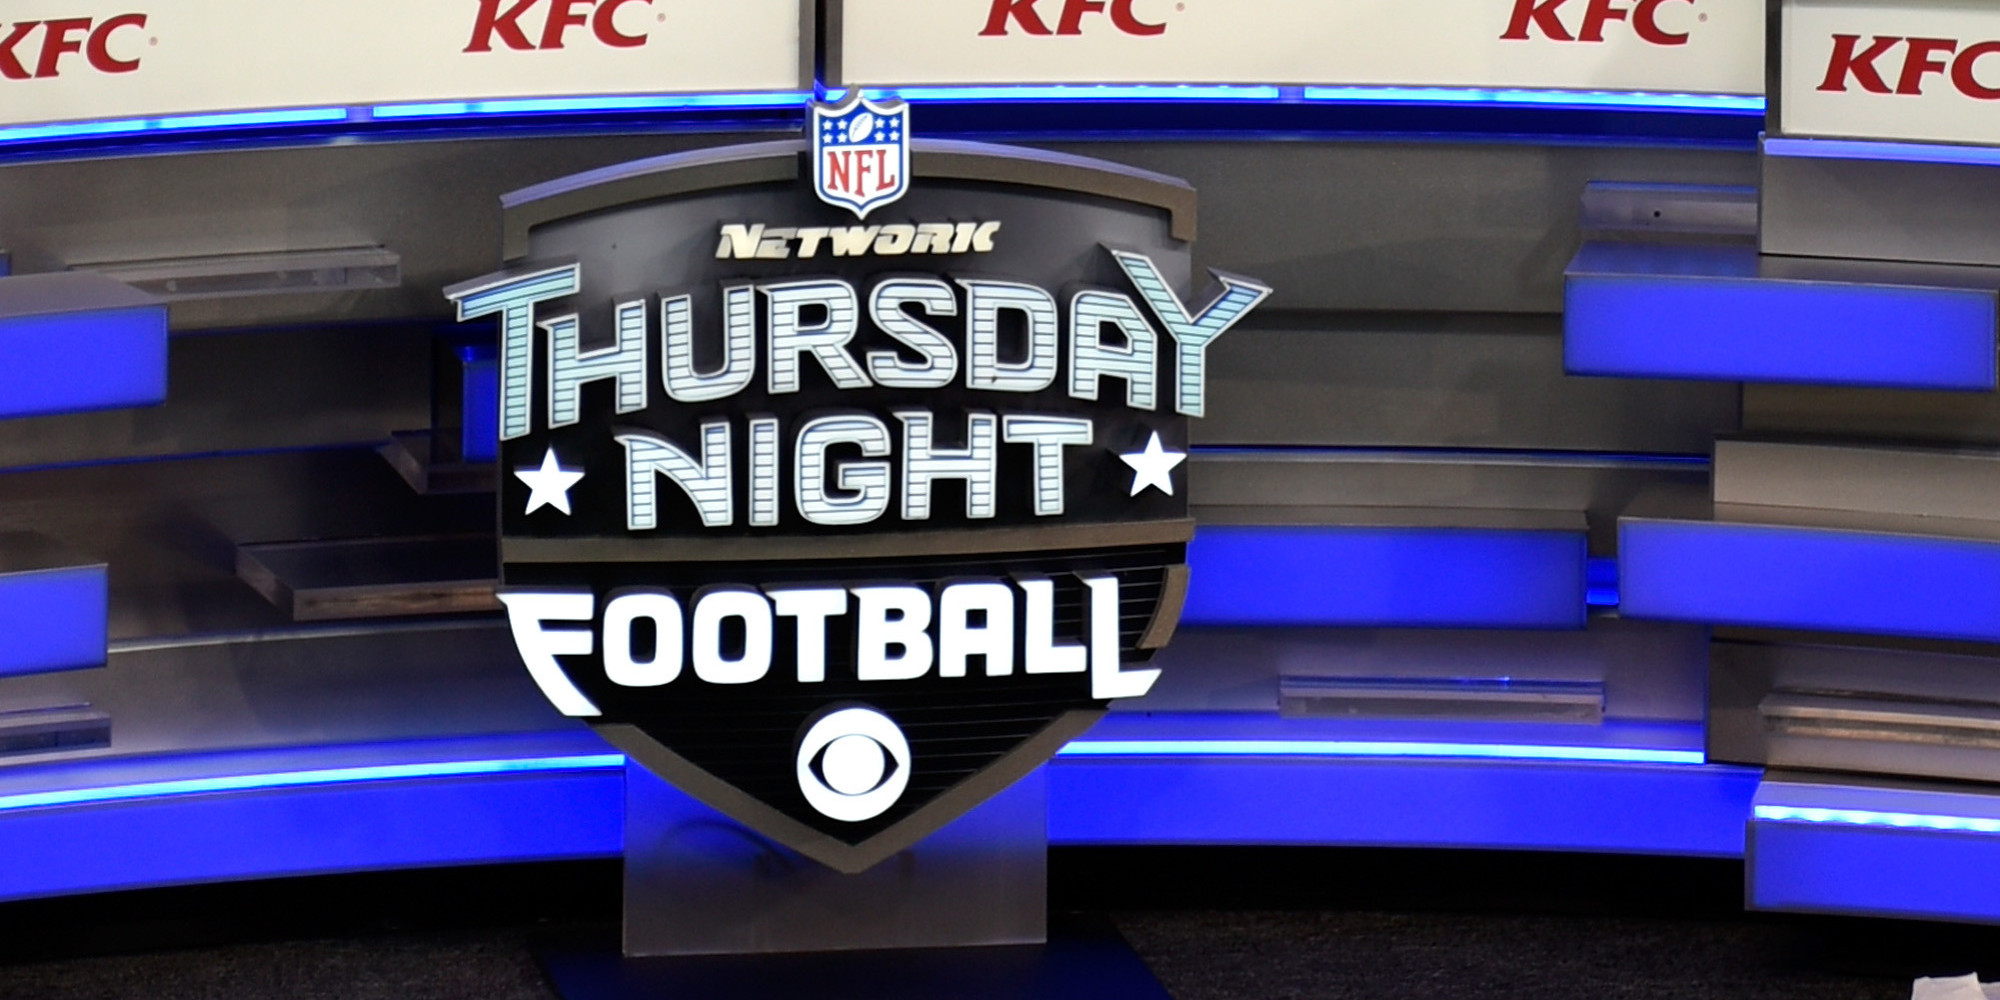 cbs sports thursday night football college football box scores